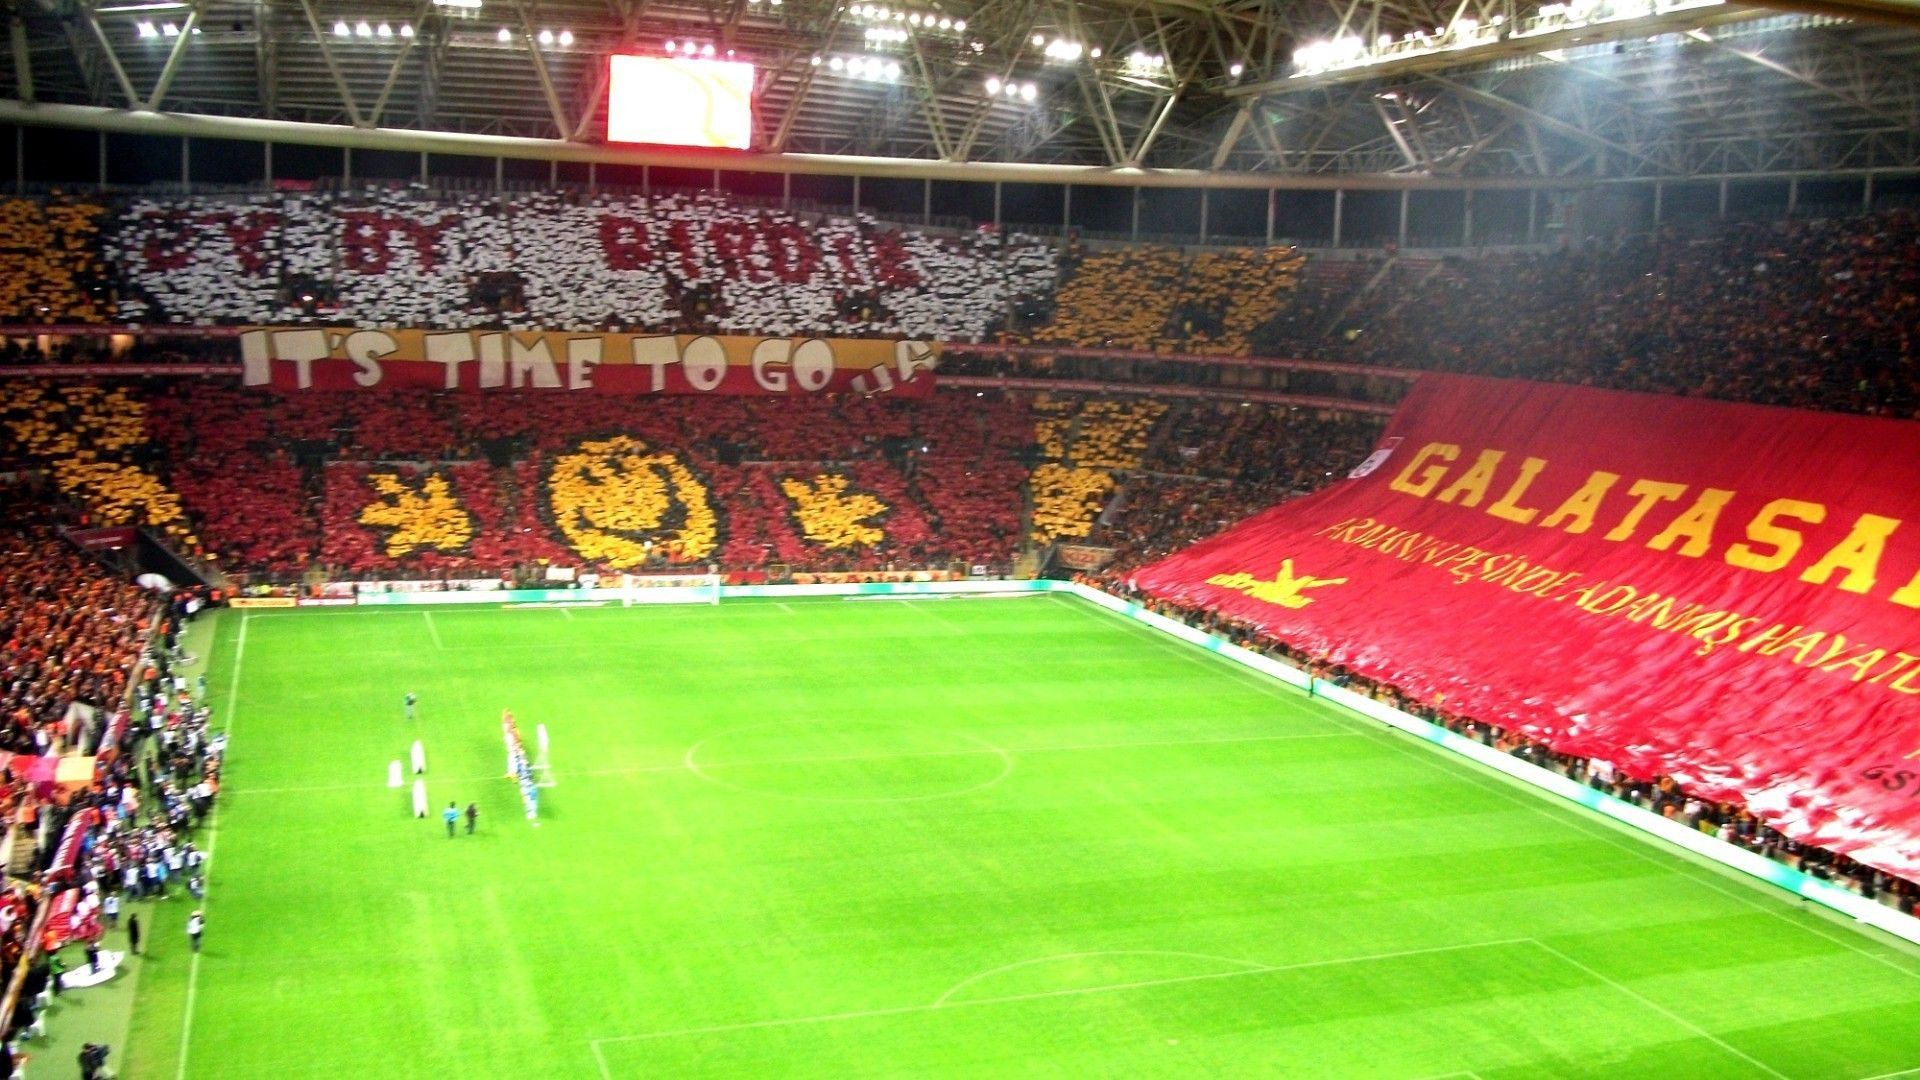 Soccer Stadium Galatasaray Sk Tt Arena Football Fans Wallpaper Soccer Stadium Arena Football Football Fans